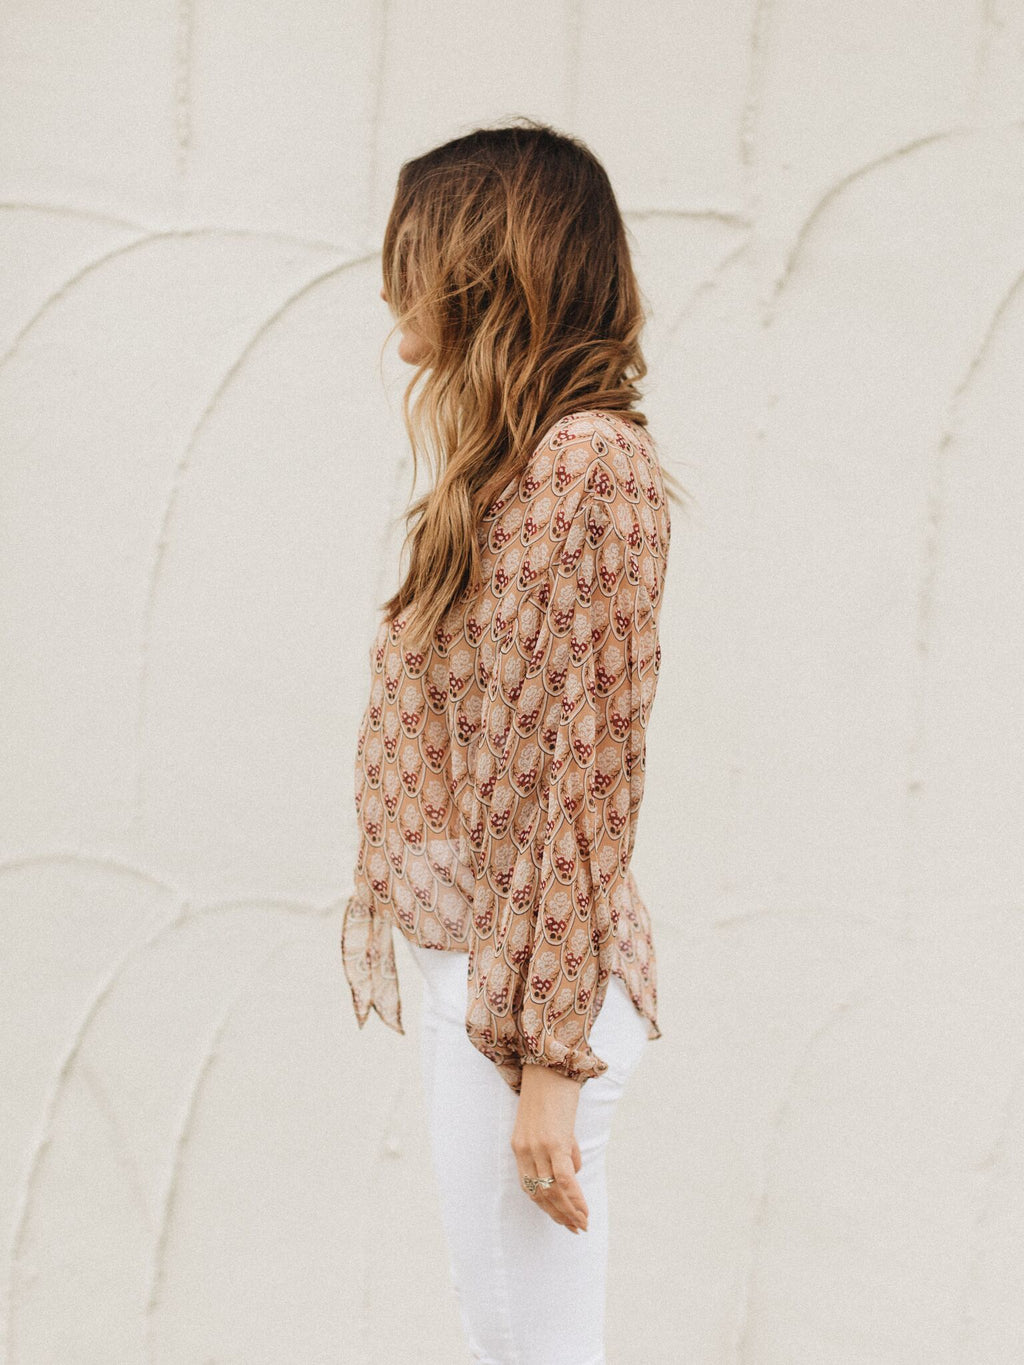 Sheer Sunset Top - Stitch And Feather